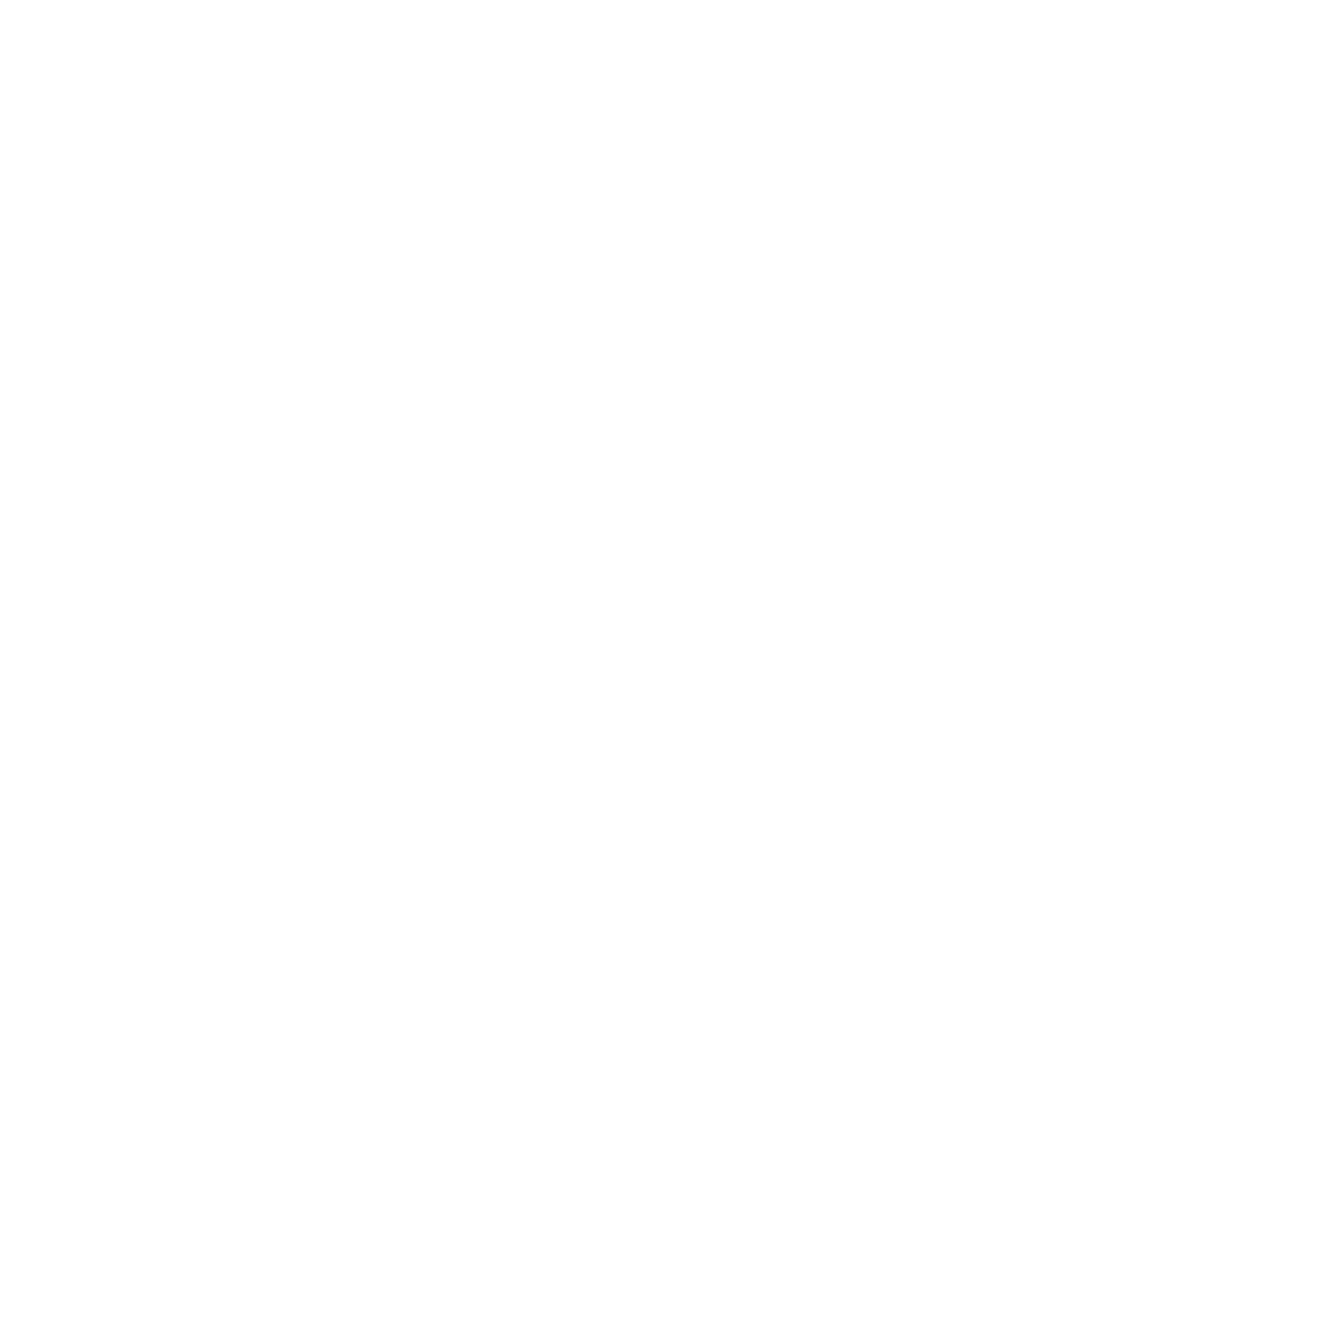 Hudson Valley Cold Pressed Oils